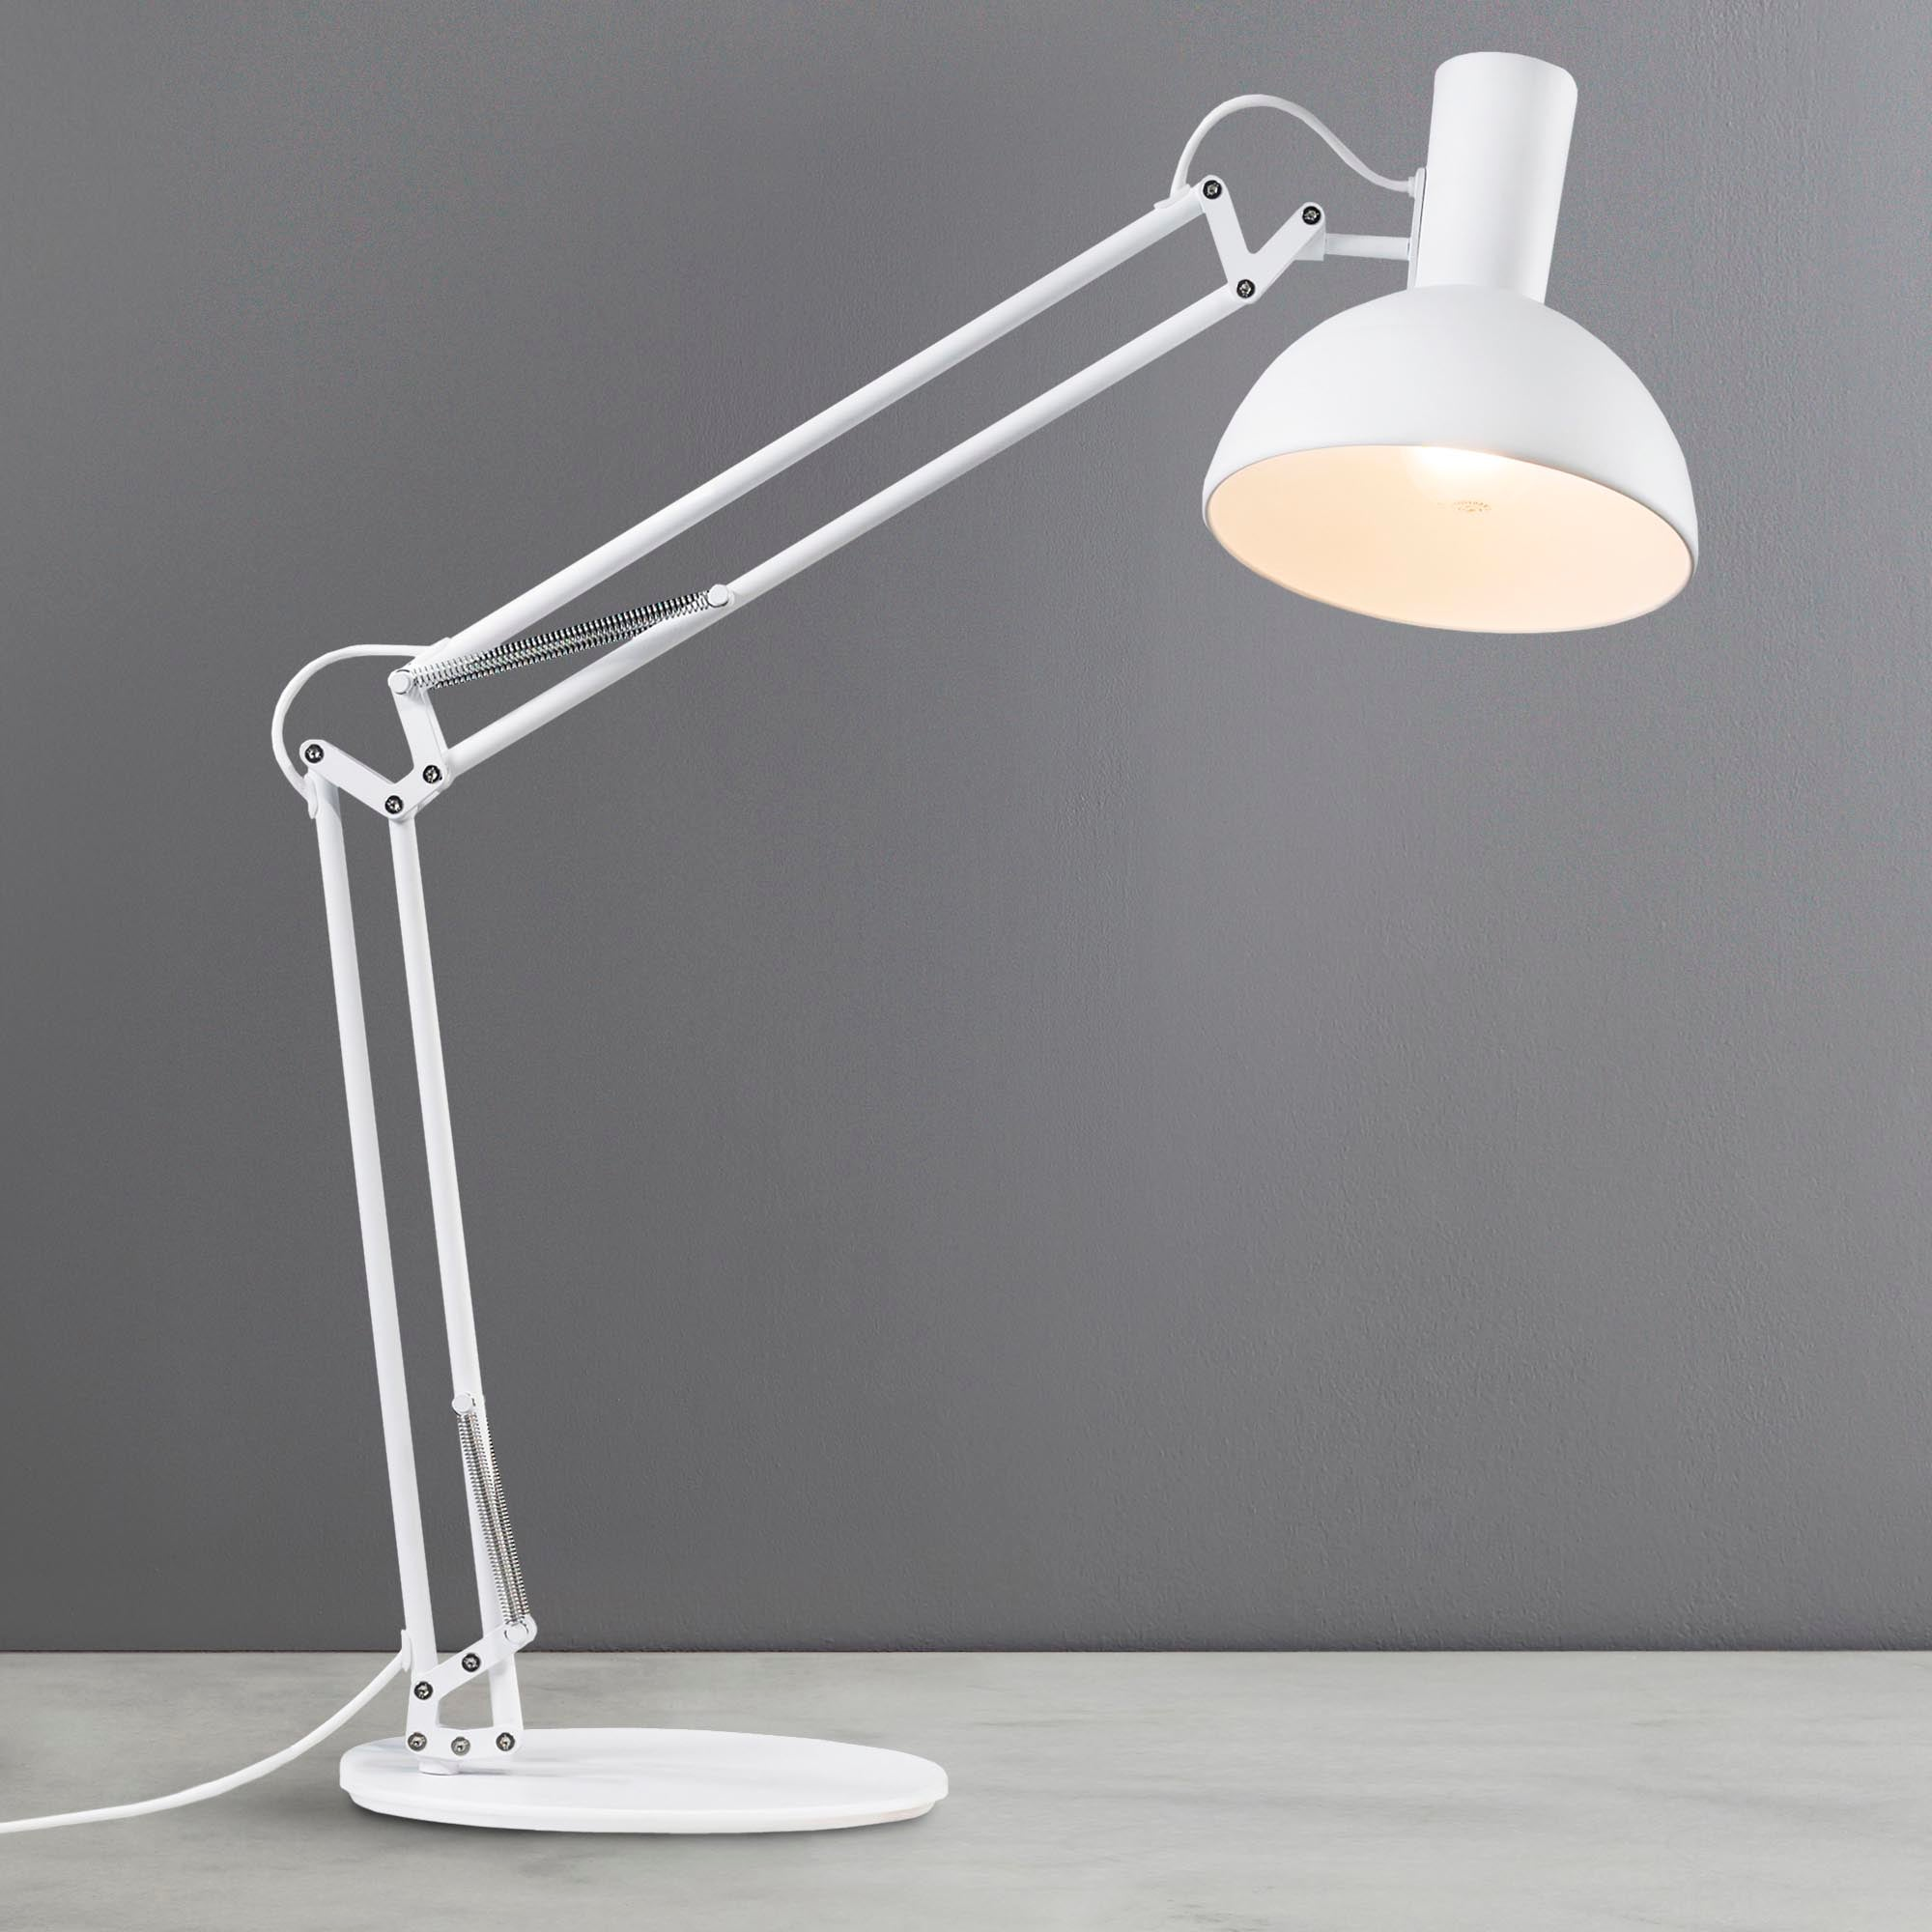 Image of Arki White Table Clamp Wall Lamp White